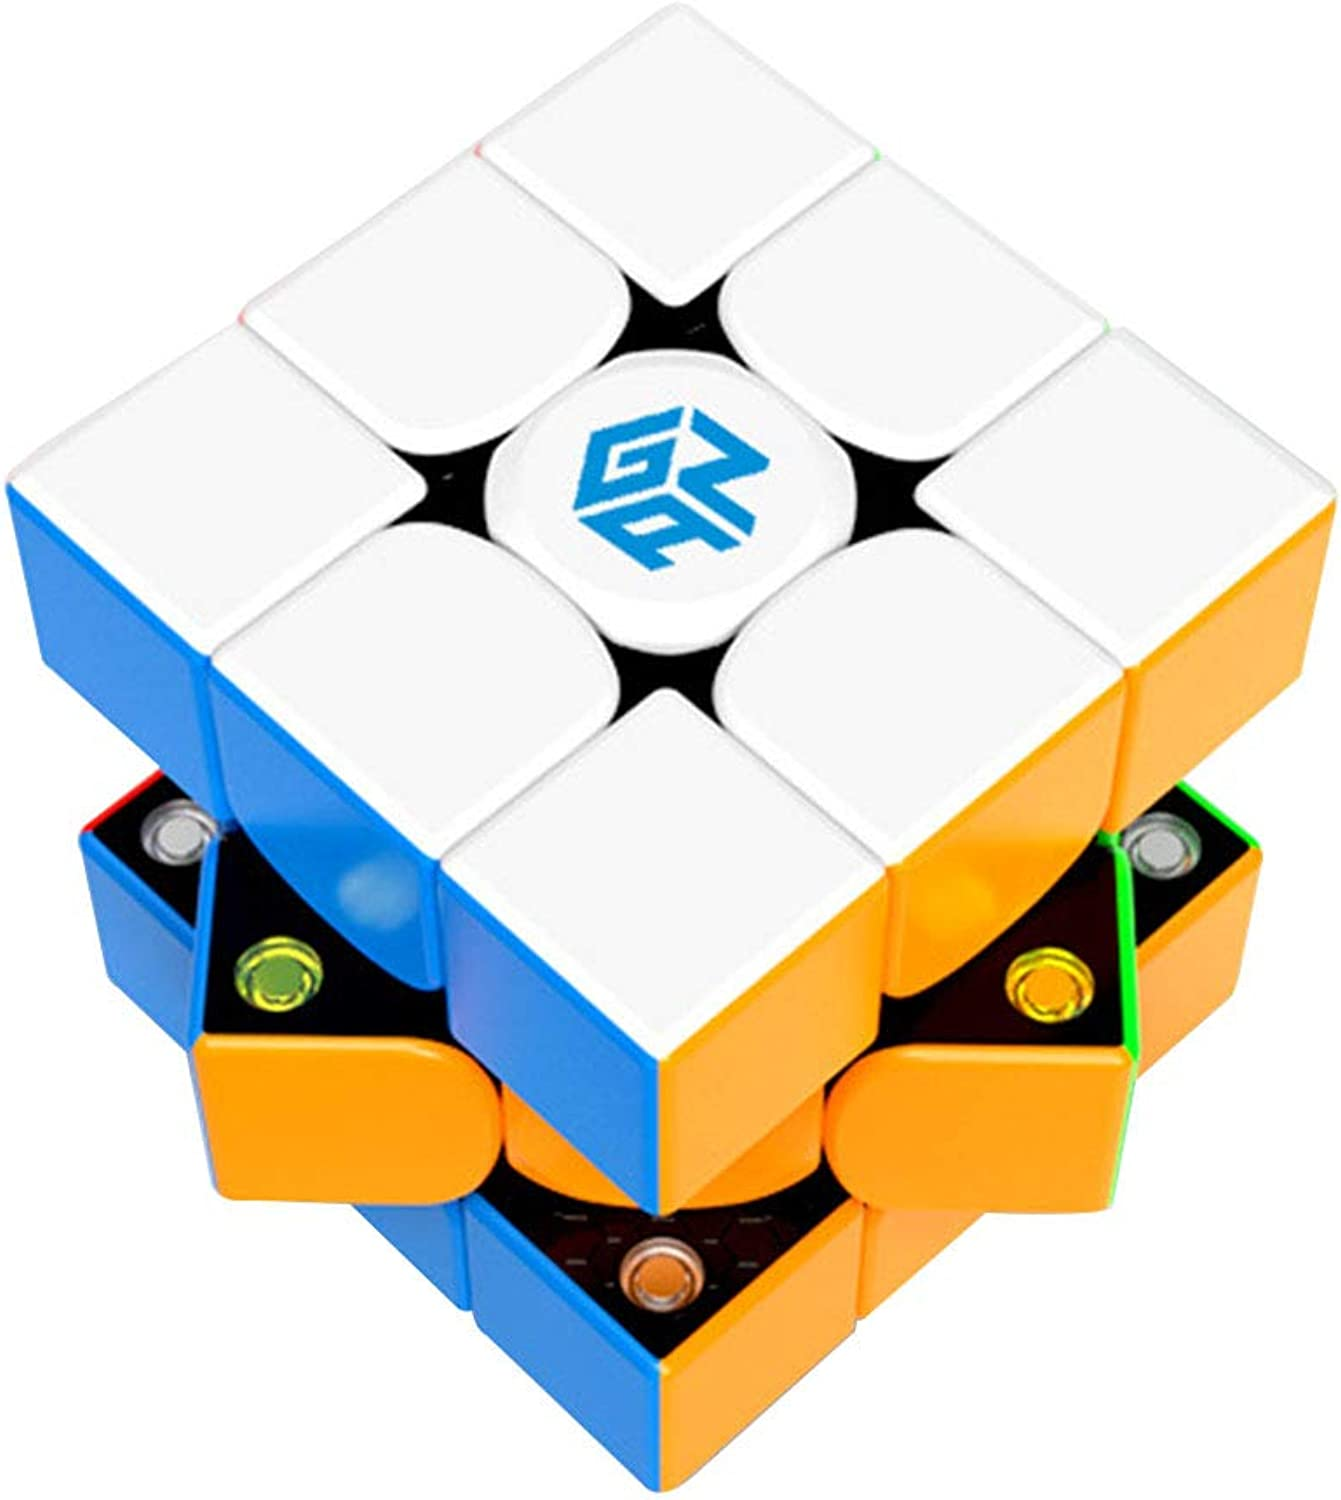 Threedimensional puzzle Cube, small size racing twisting artifact magnetic smooth game dedicated highend cube (5.4  5.4  5.4CM)